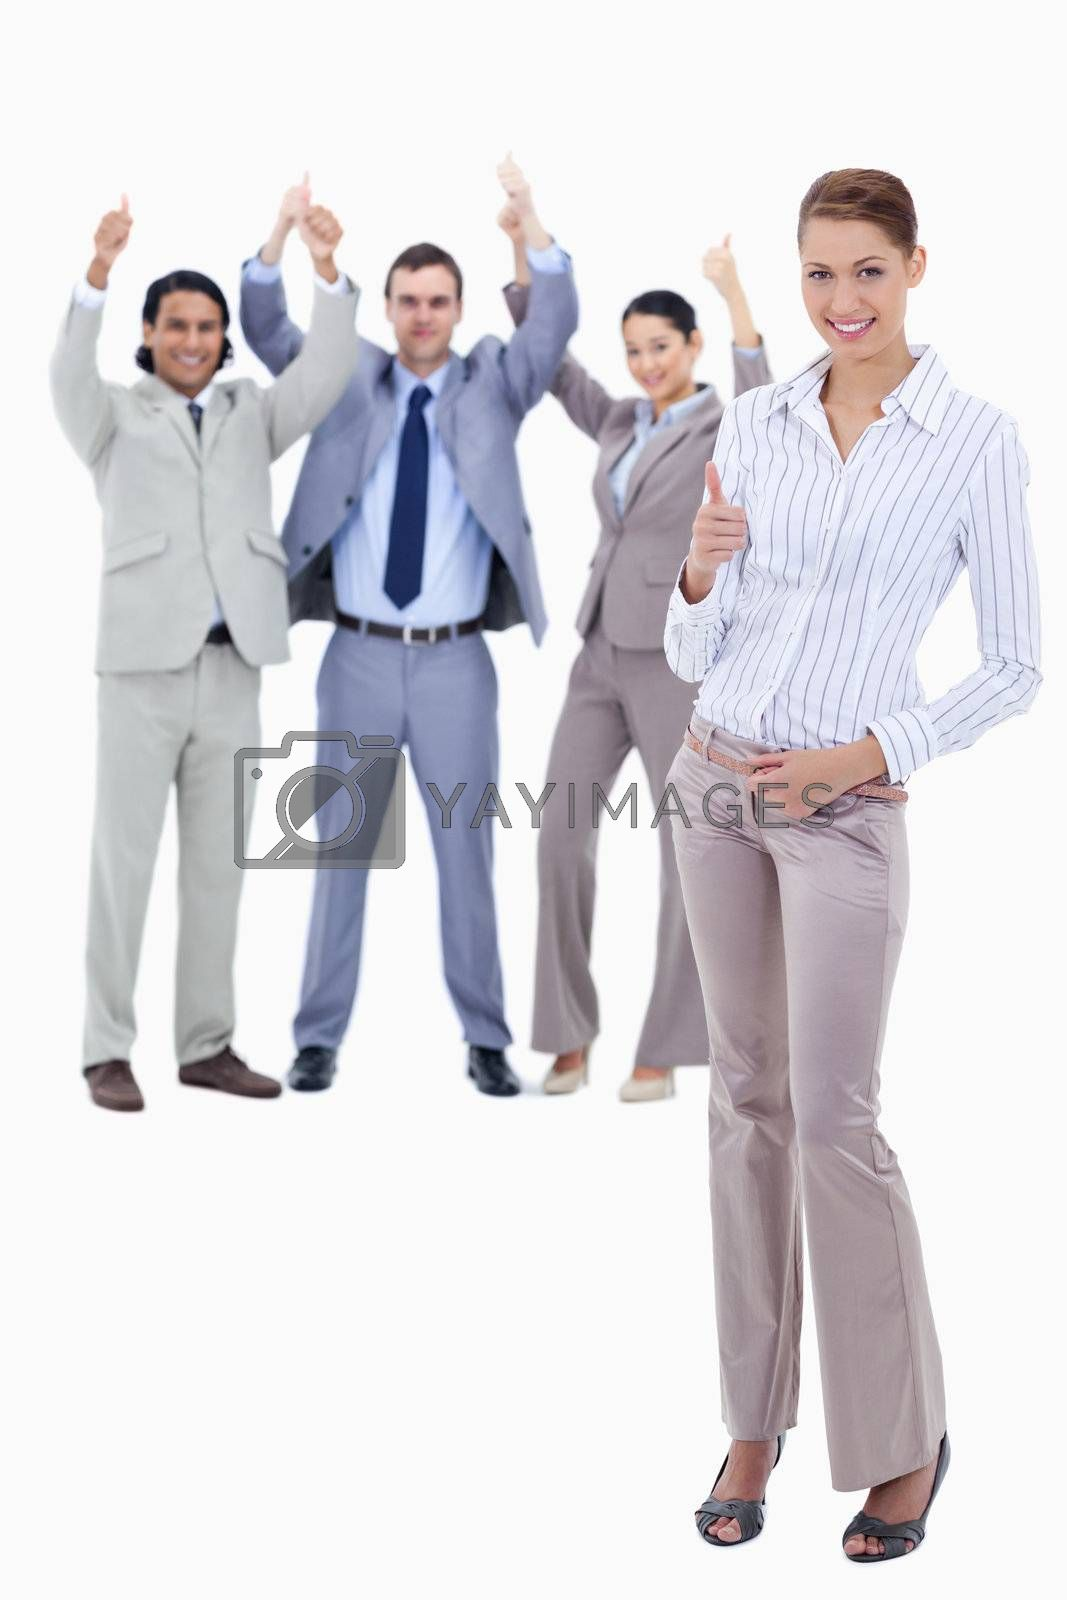 Secretary in foreground and business people with their thumbs up against white background